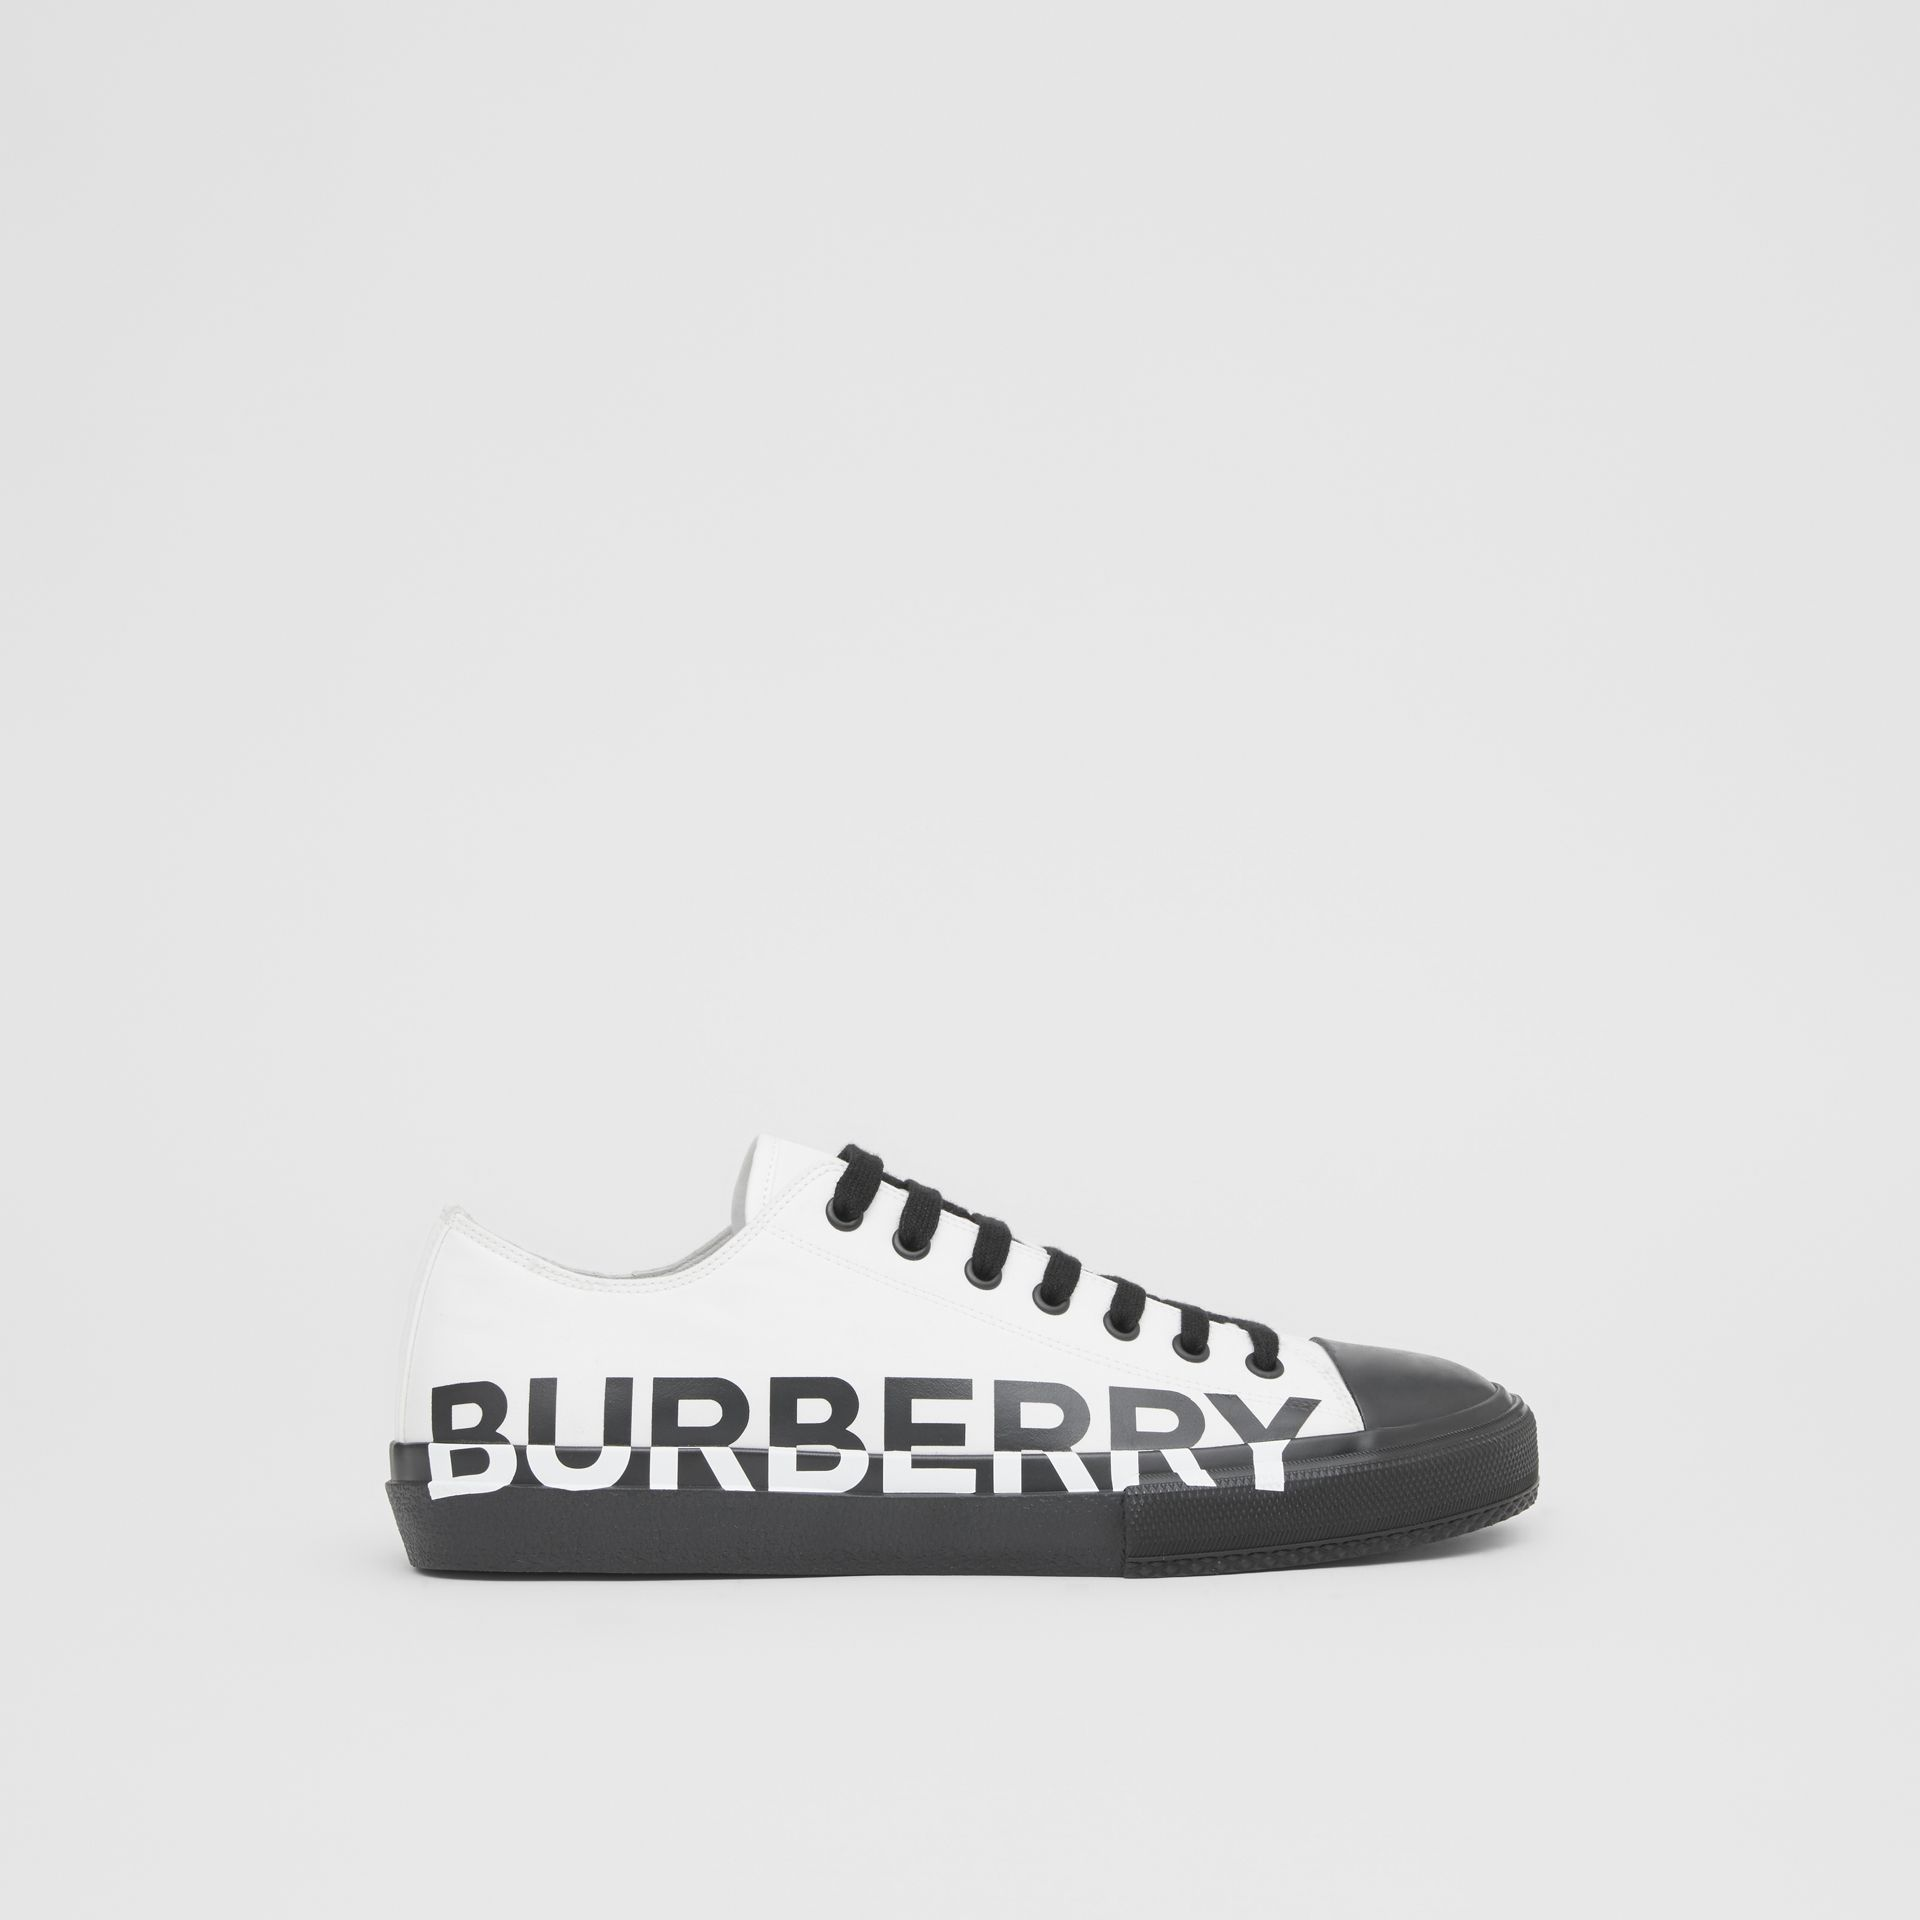 Logo Print Two-tone Cotton Gabardine Sneakers in Optic White/black - Women | Burberry - gallery image 5